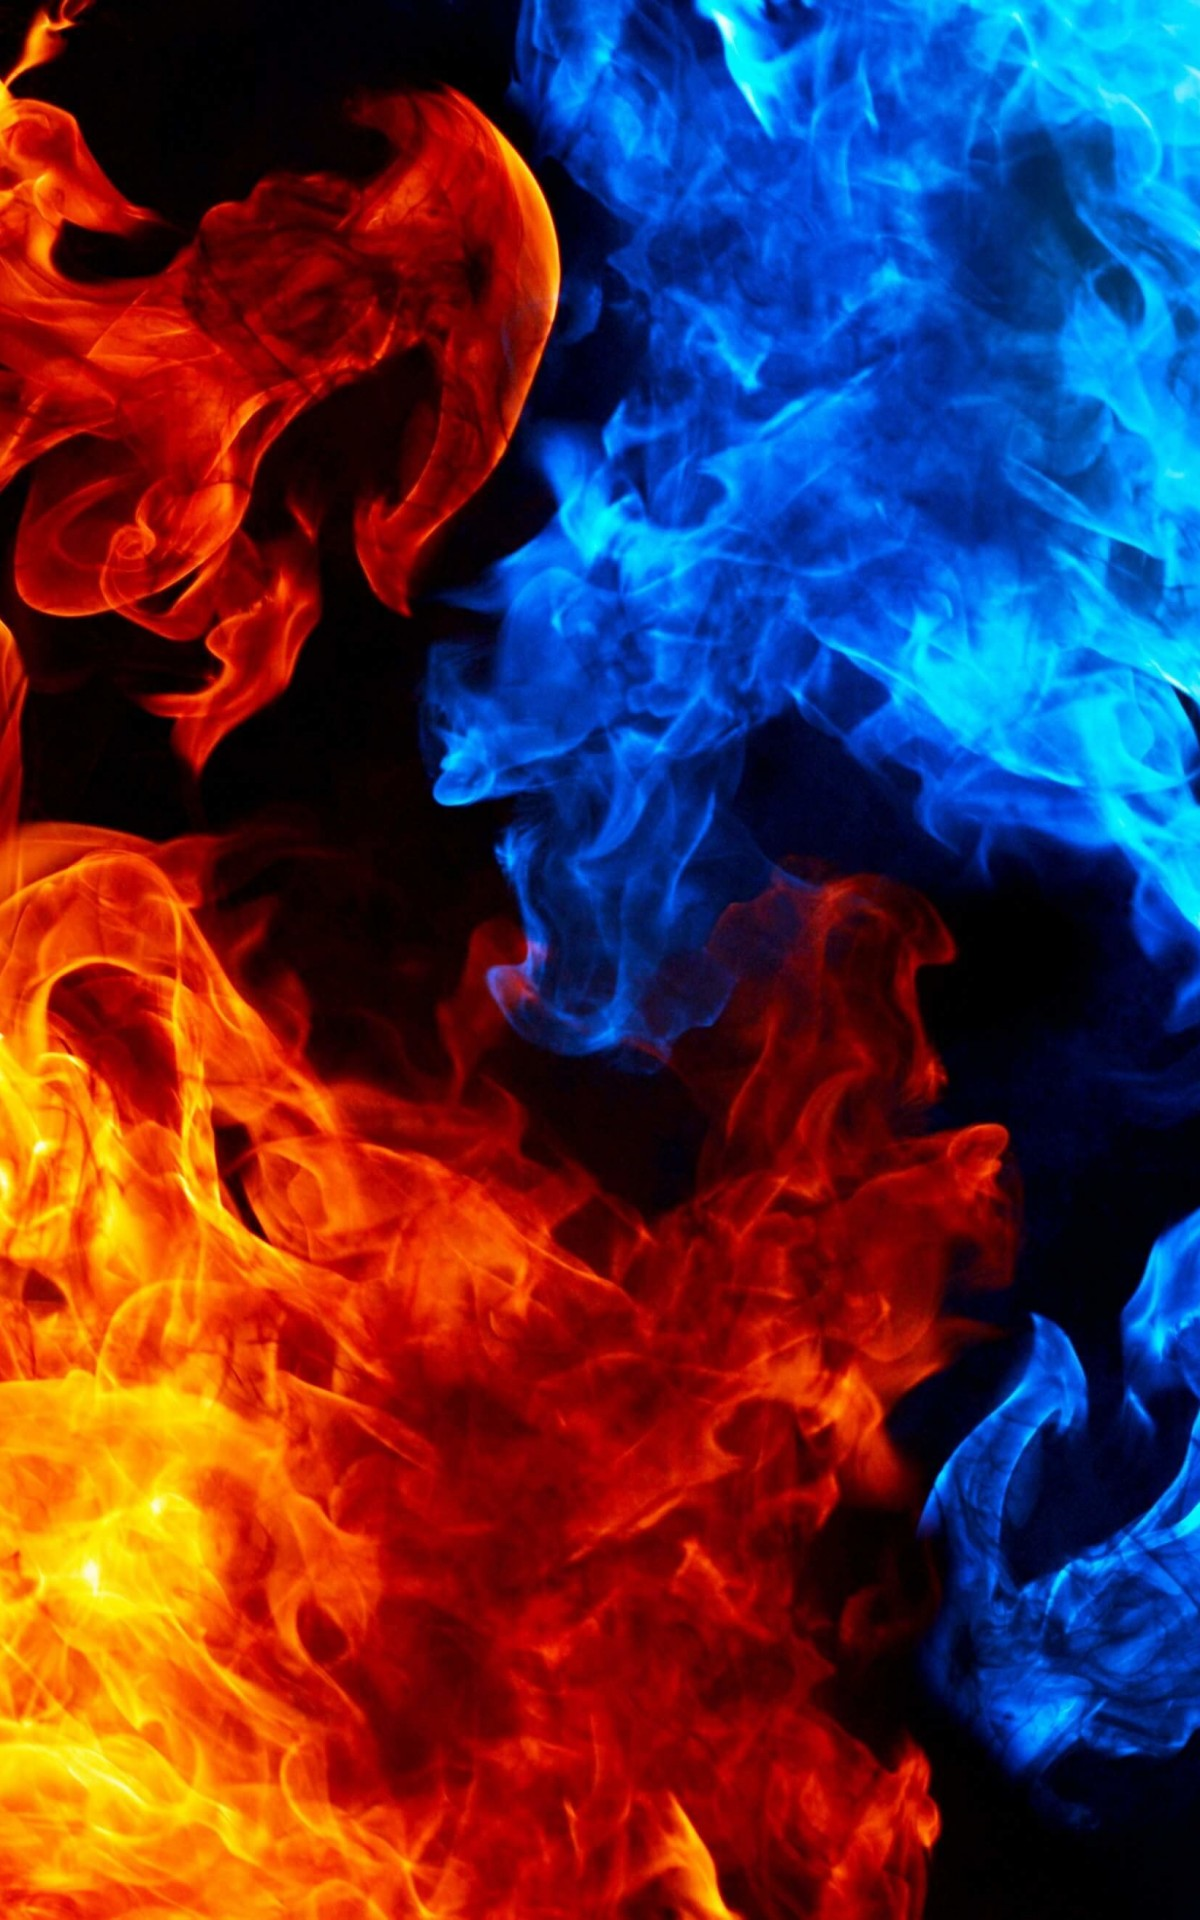 Blue And Red Fire Wallpaper for Amazon Kindle Fire HDX